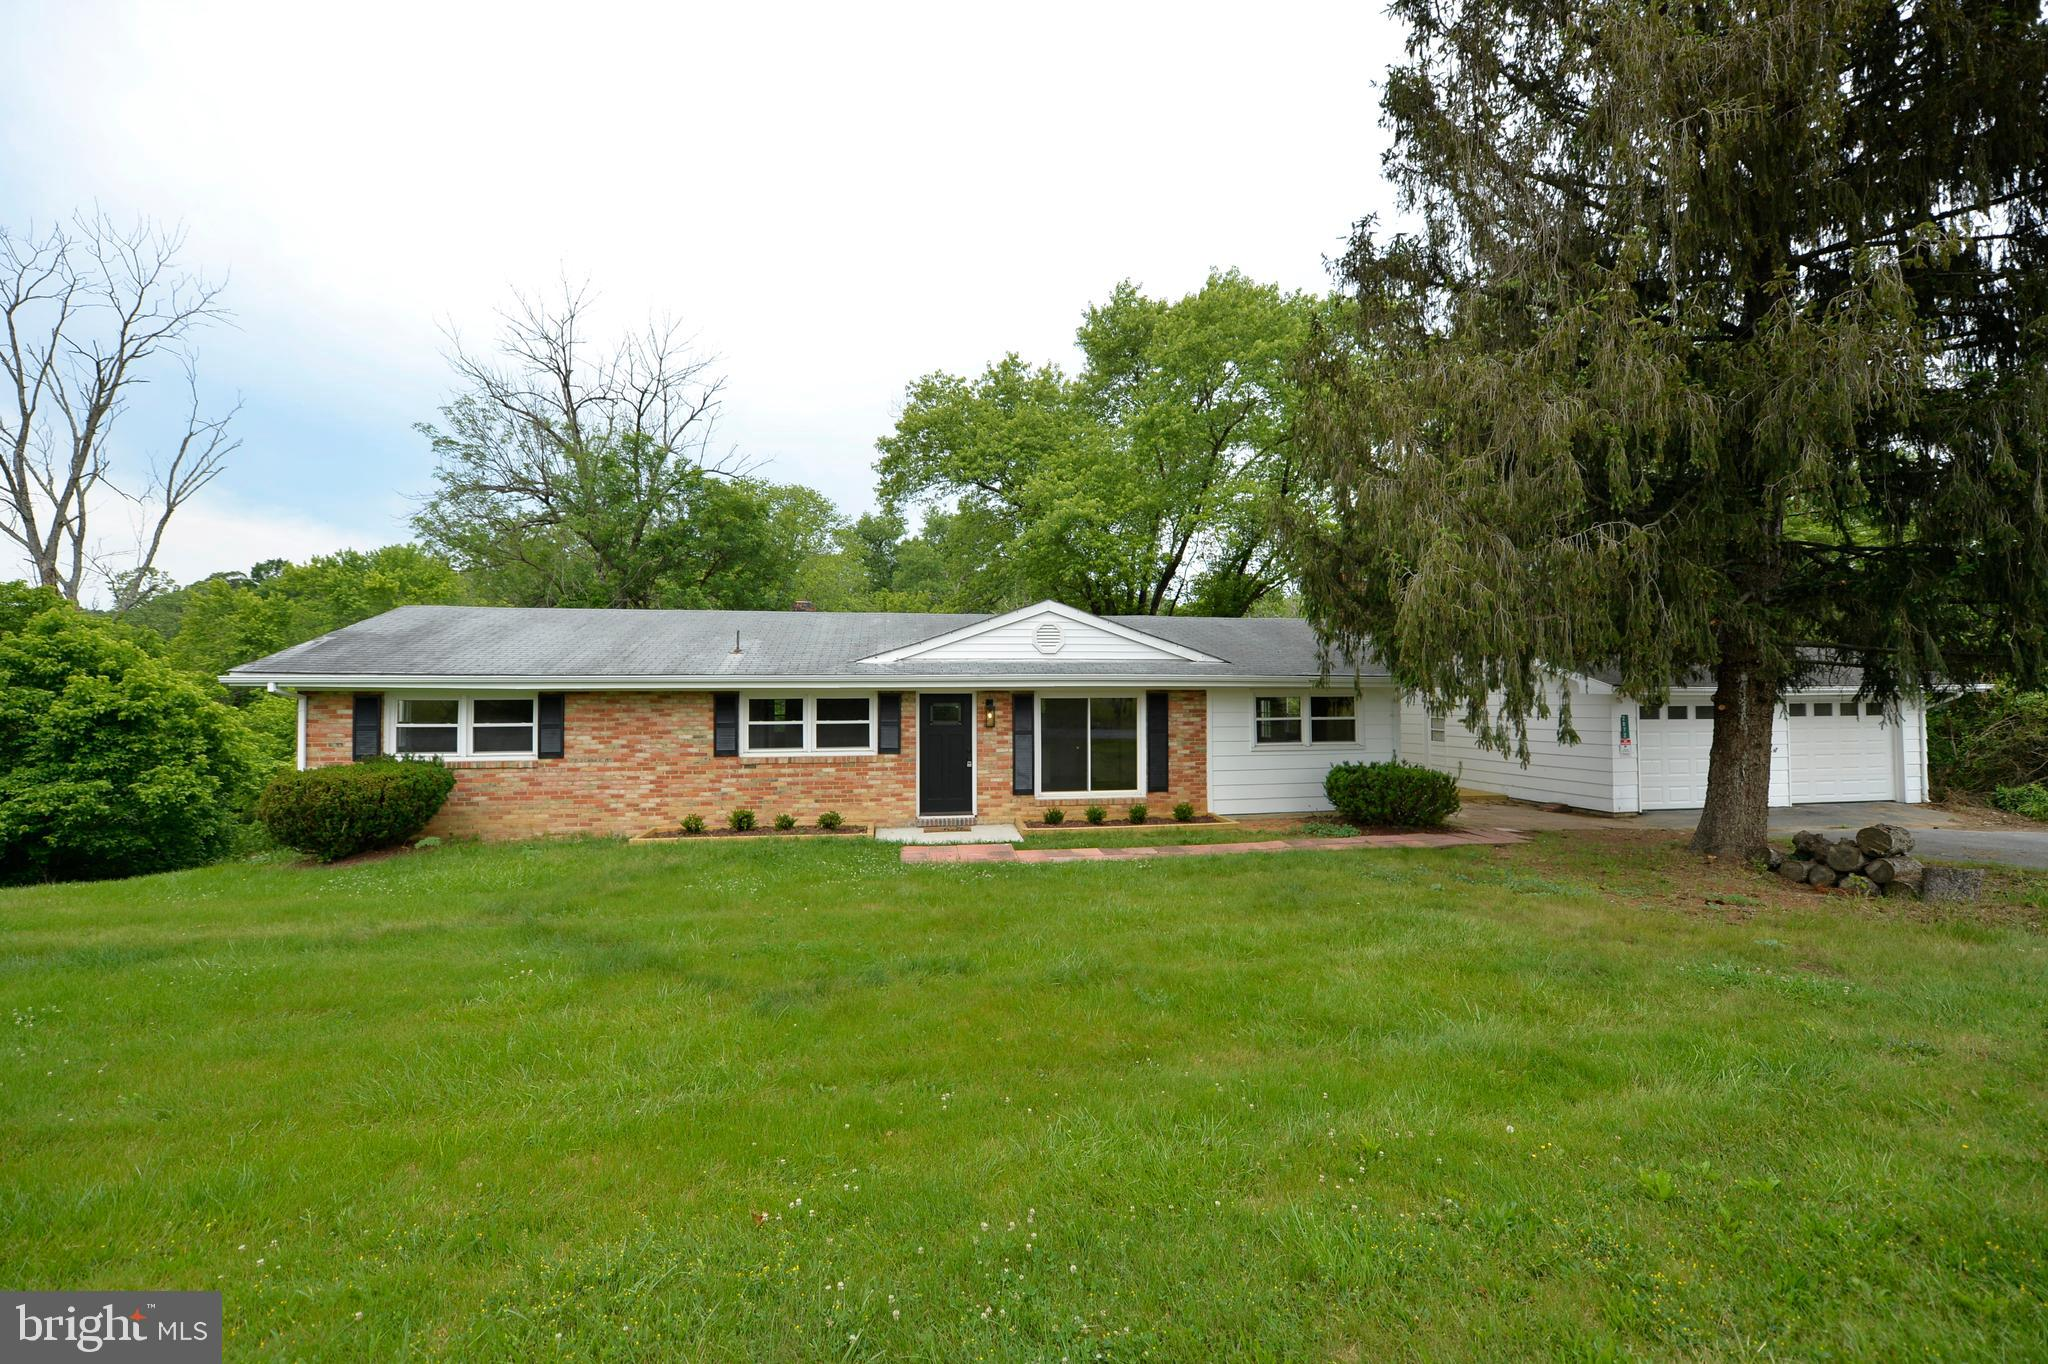 Wow! Stunning single-family home located on 2.5 acres along the serene Opequon Creek in Clarke Count